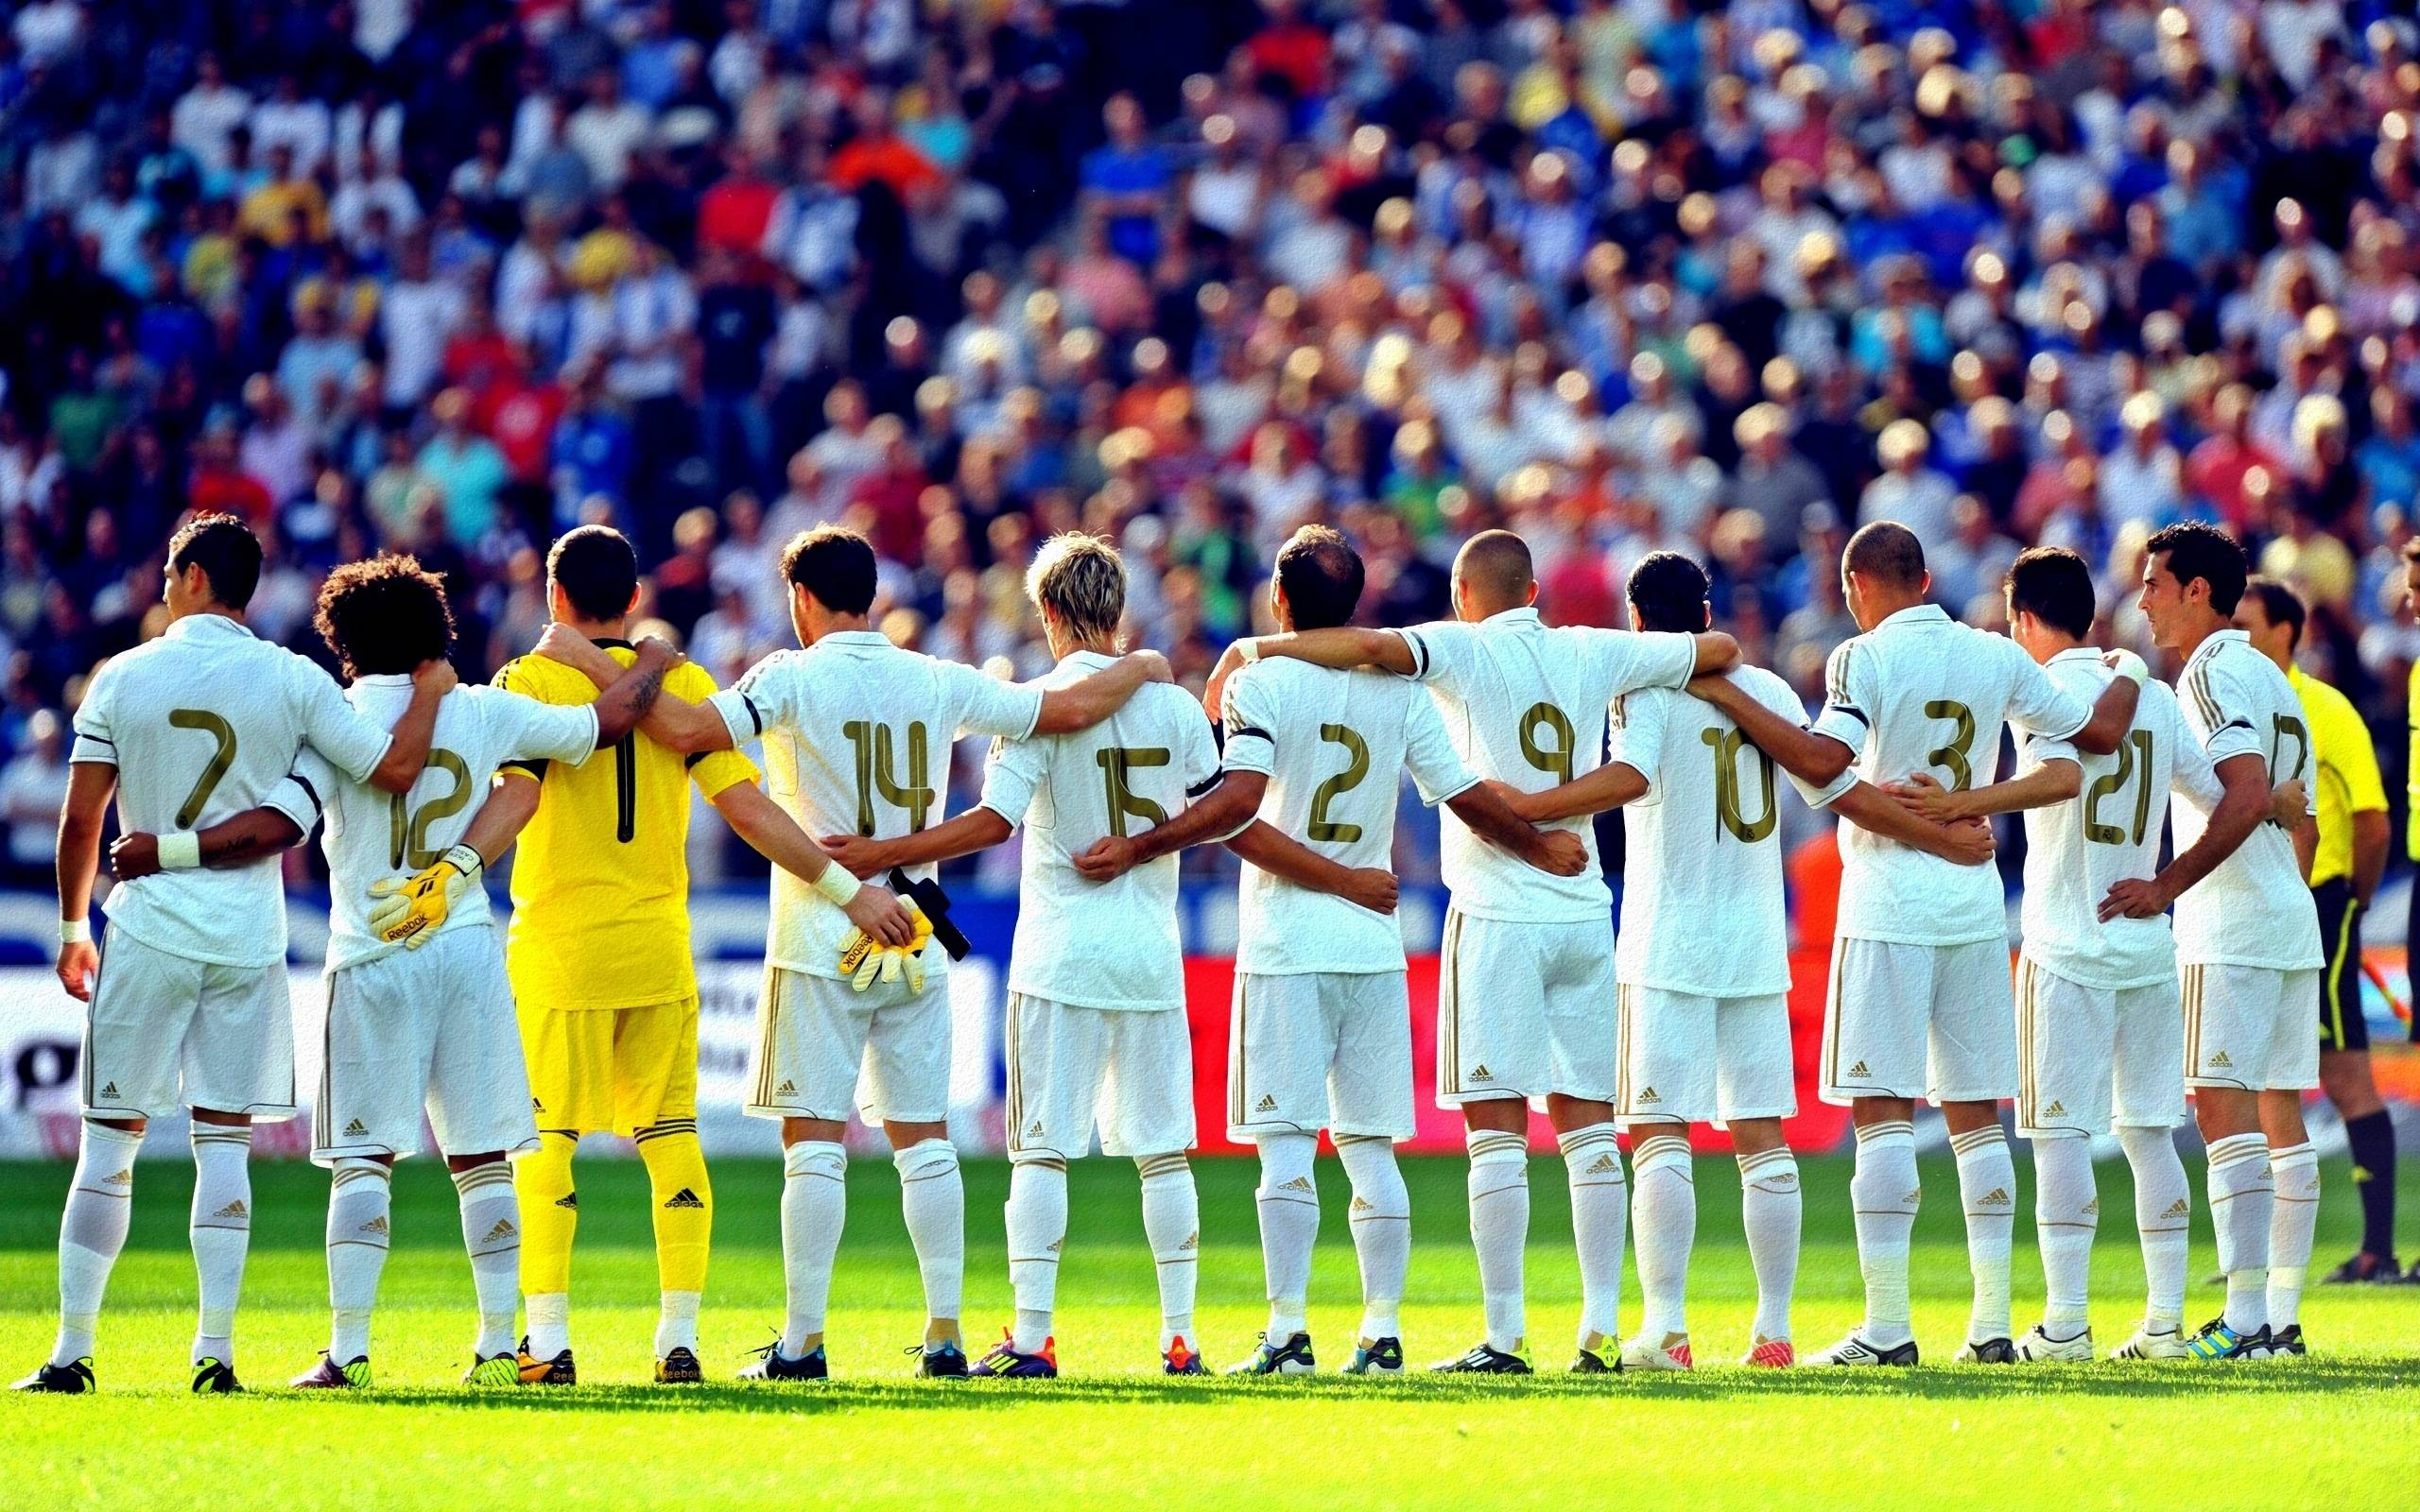 Wallpaper real madrid for windows xp - Real Madrid Wallpaper Laptop Windows 12560 Wallpaper Cool